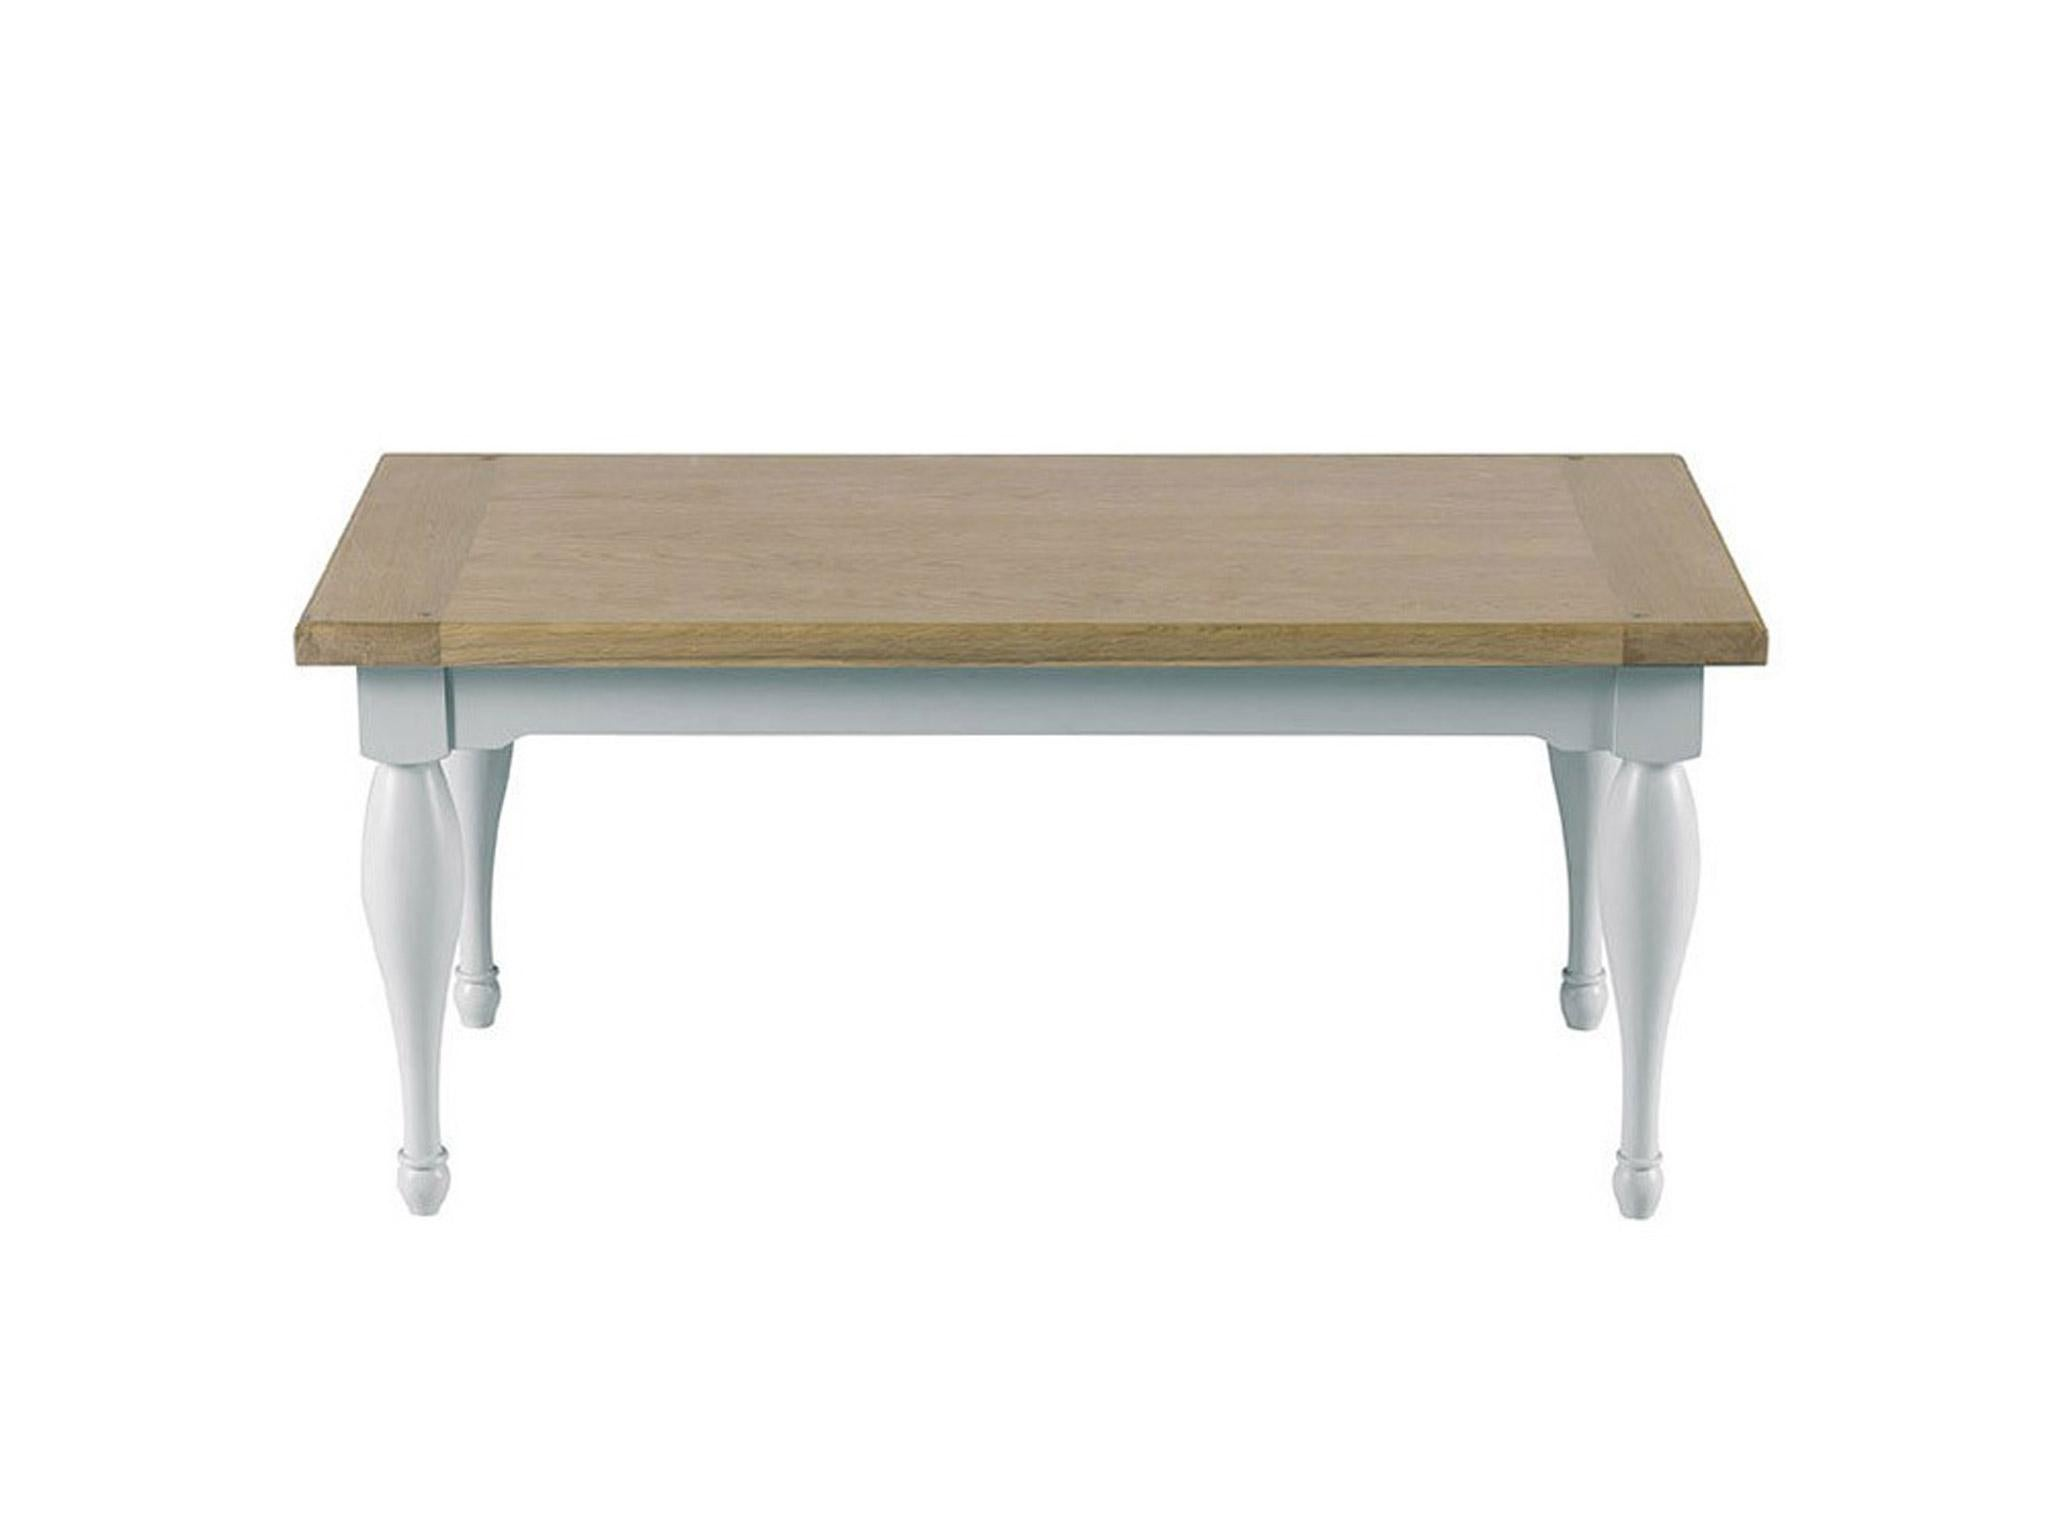 This wooden coffee table has just a hint of country styling with turned legs and base in birch with a light grey painted finish